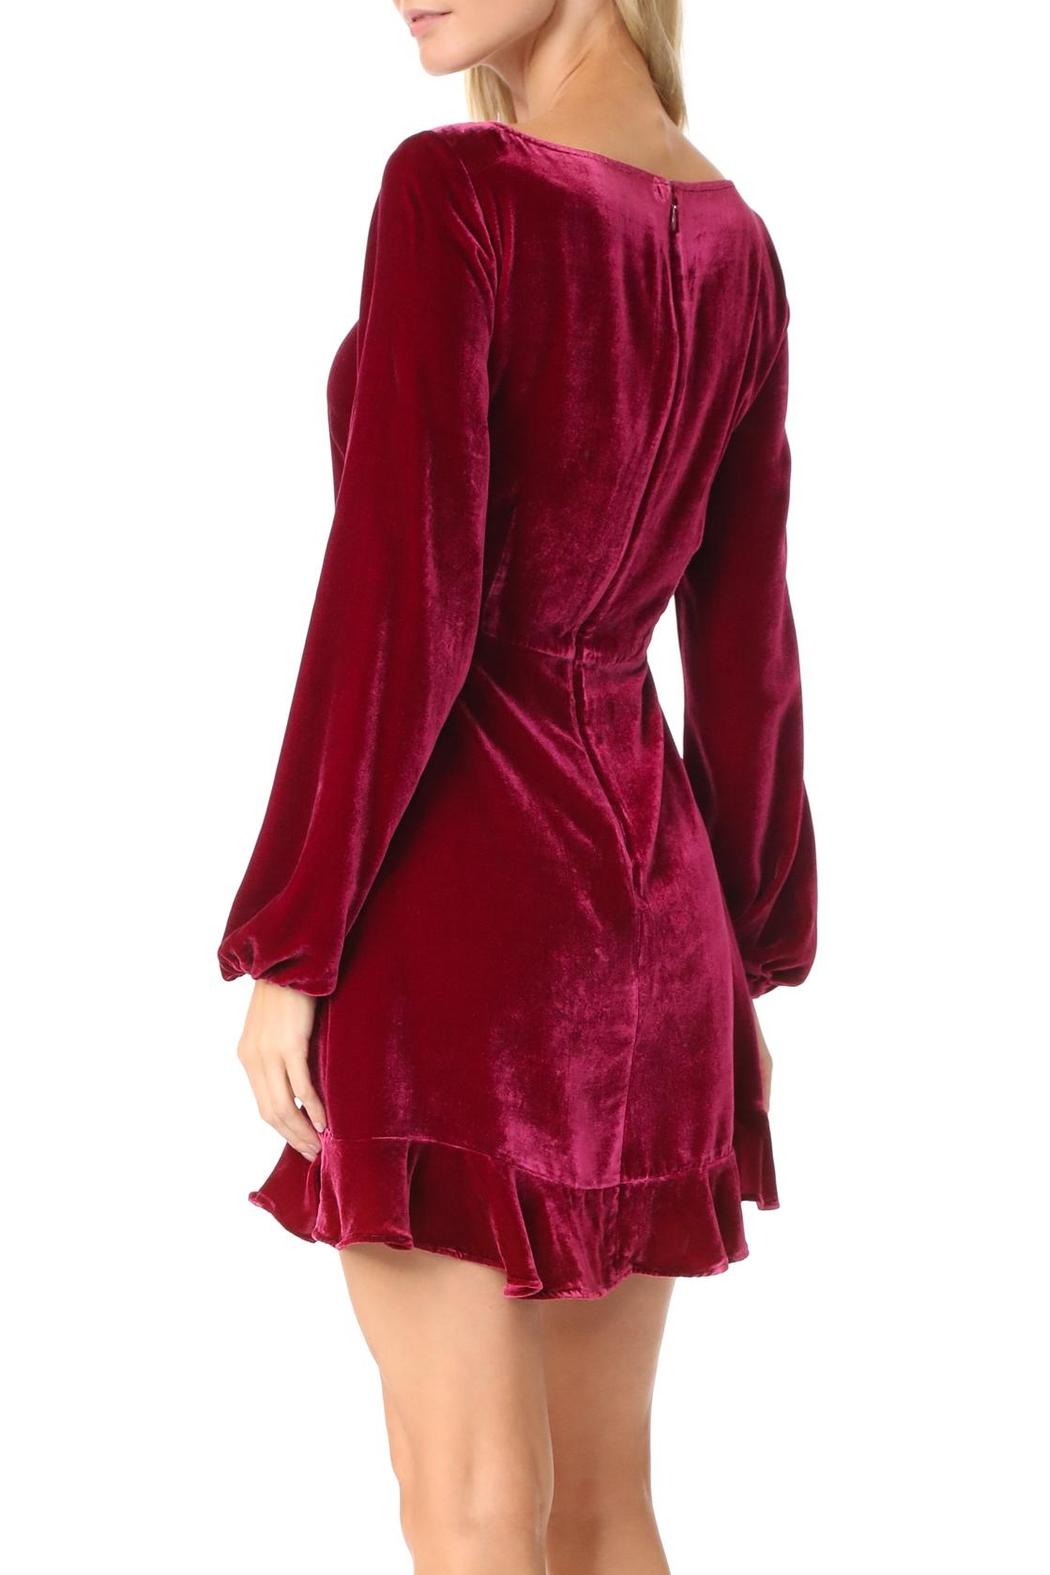 FOR LOVE & LEMONS Velvet Mini Dress - Front Full Image